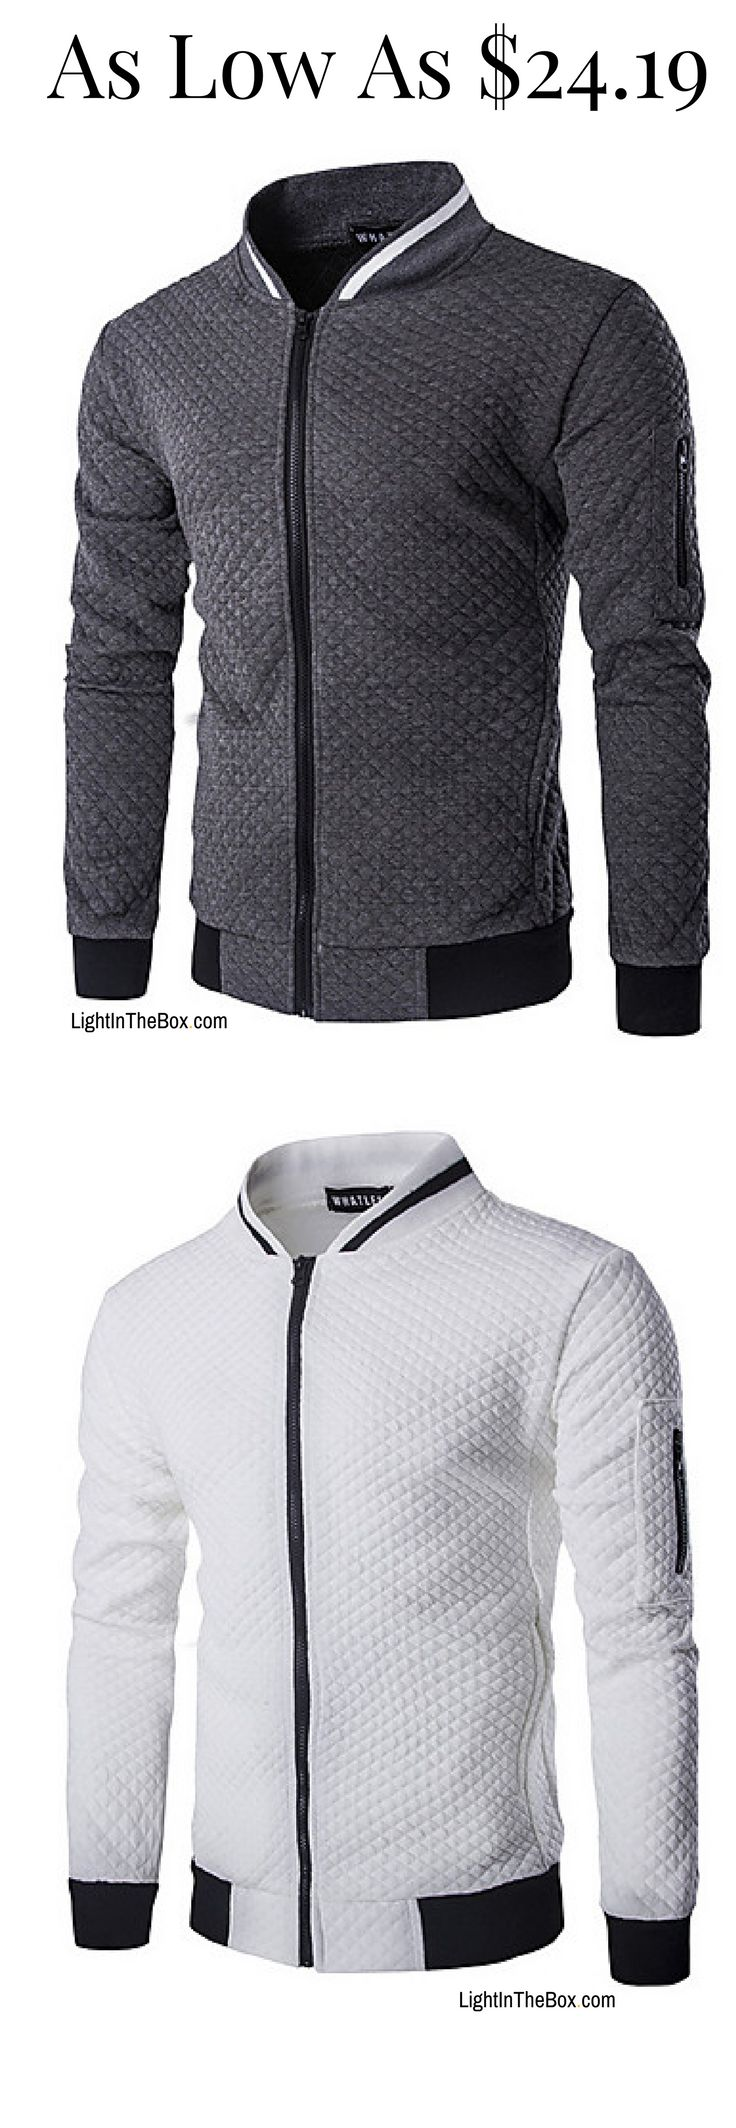 Casual sporty men zipper jacket/ blazer. Perfect for comfort daily wear. Like it? Click on the picture to shop in grey/ black/ white colours at $24.19.